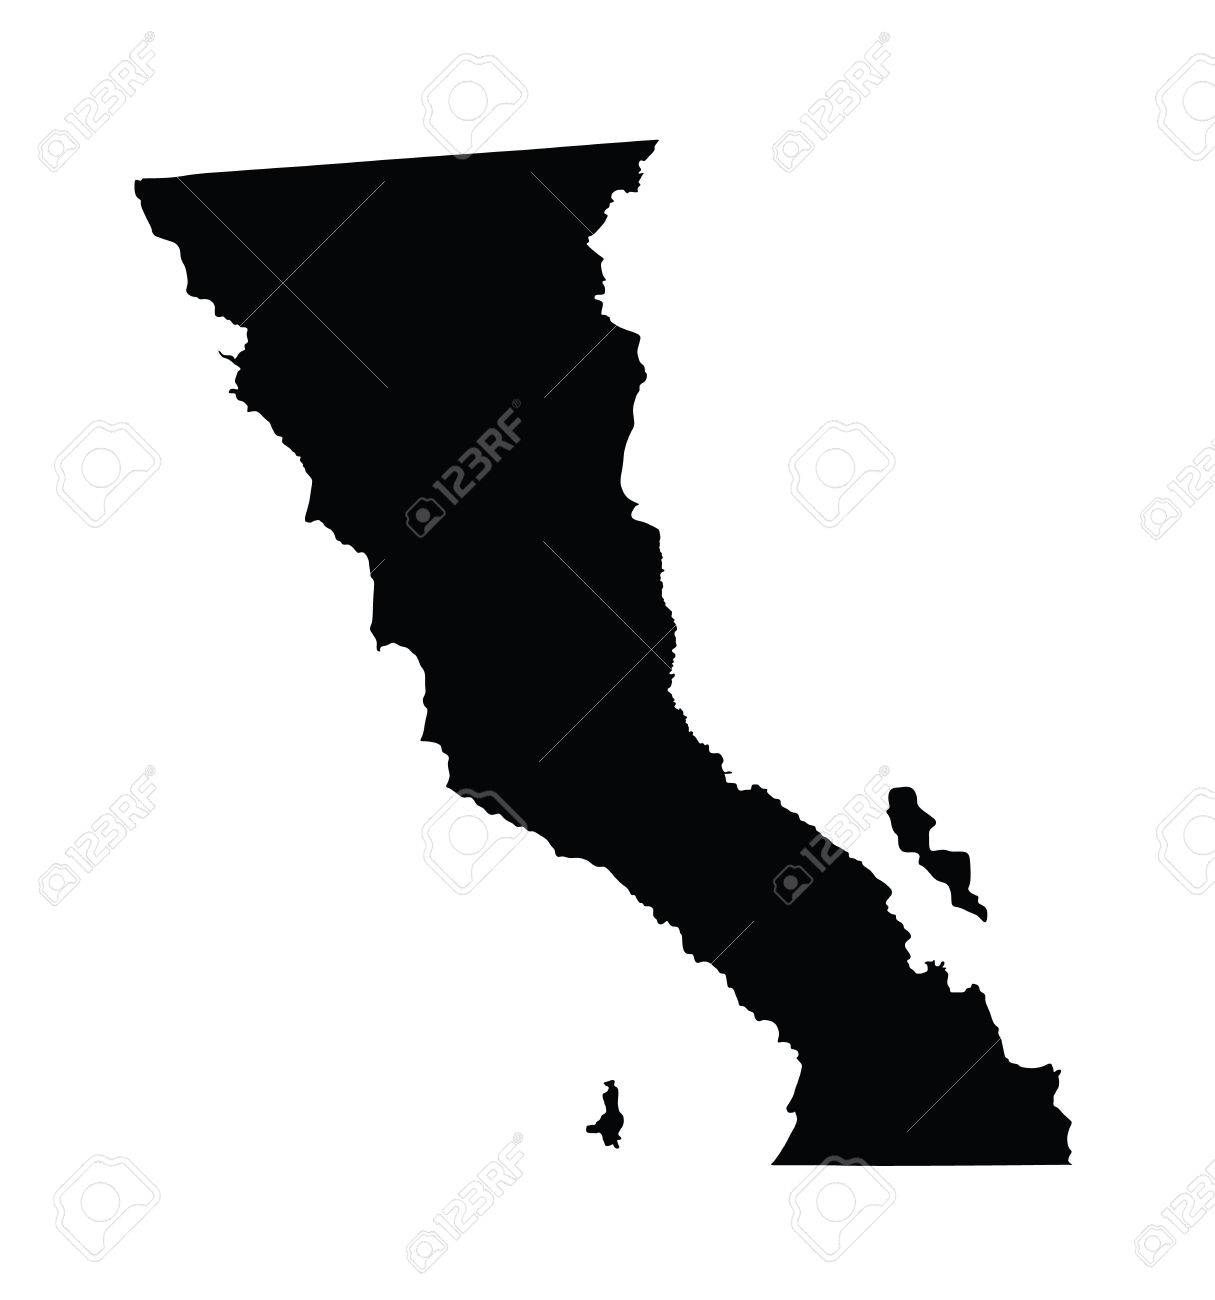 Baja california mexico vector map isolated on white background baja california mexico vector map isolated on white background high detailed silhouette illustration publicscrutiny Choice Image